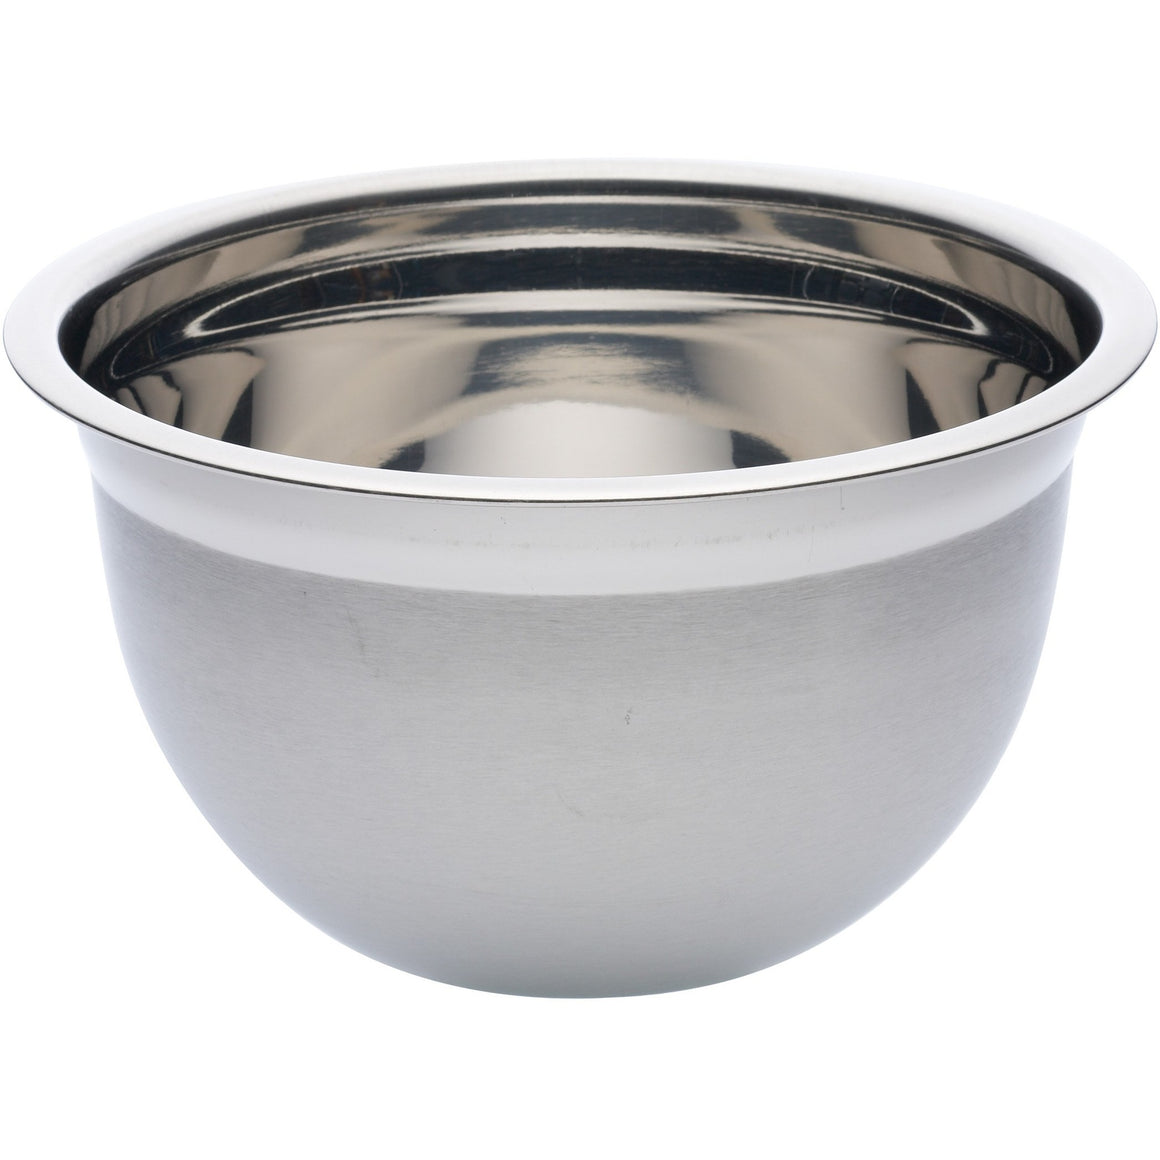 Kitchen Craft 22cm Stainless Steel Bowl